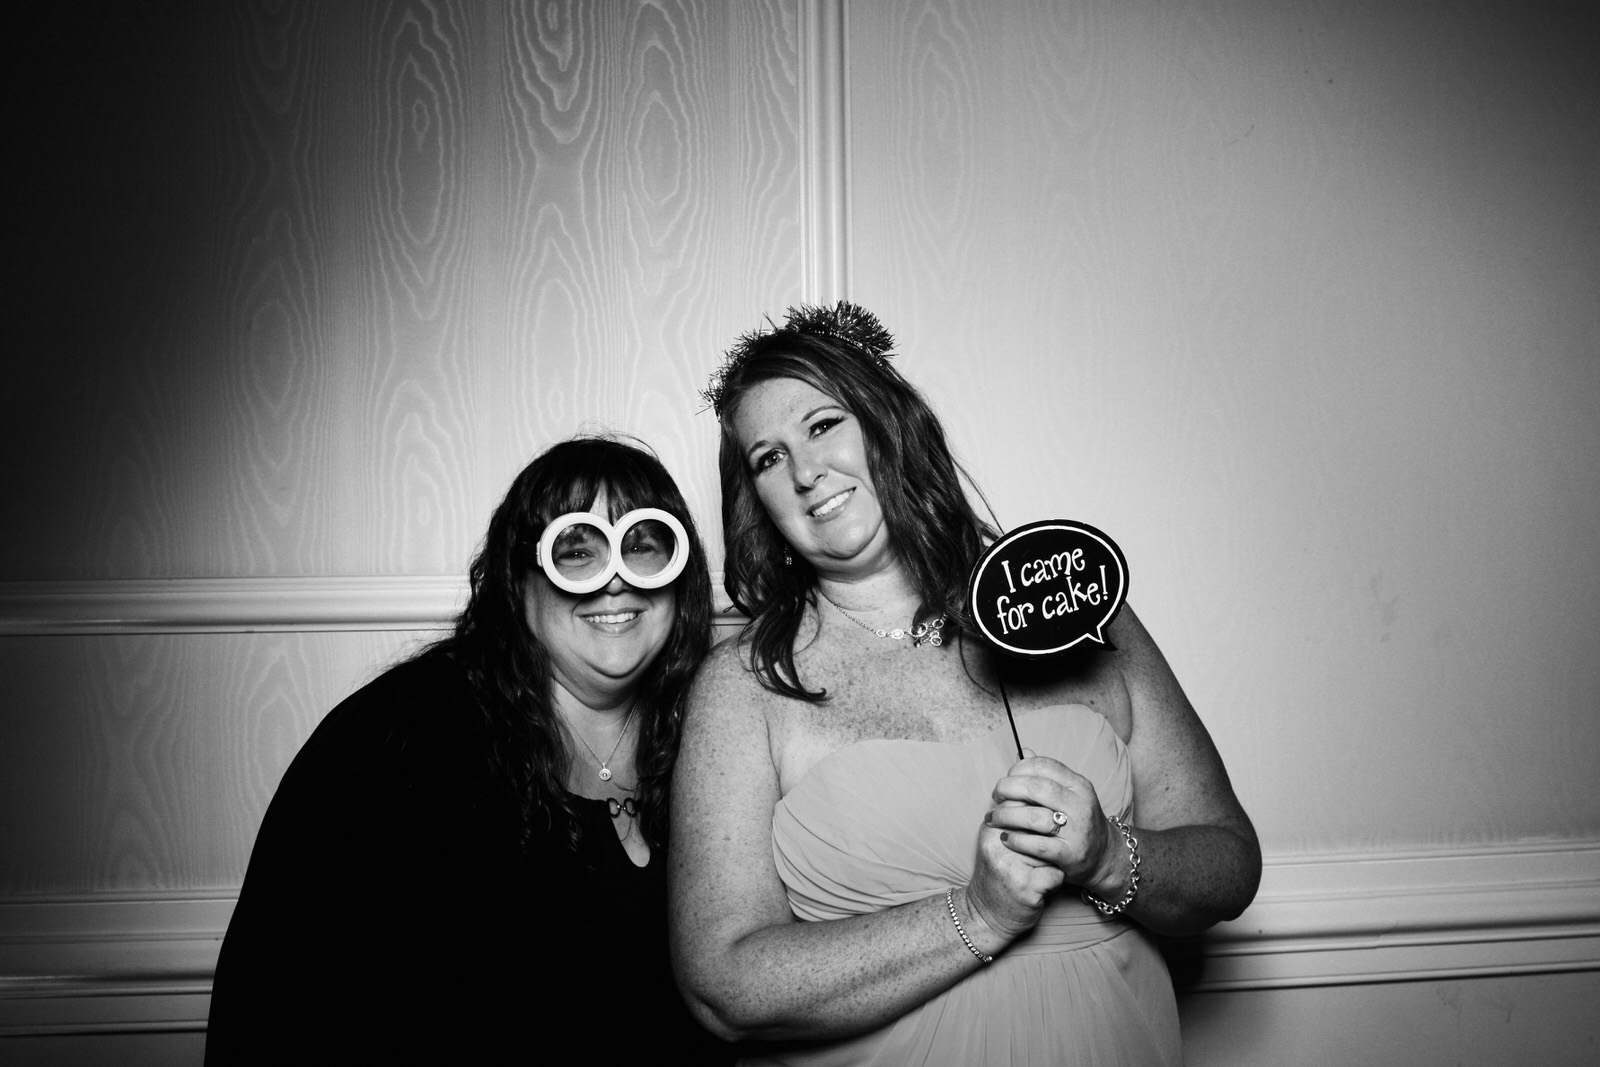 Ashley-Tyrone-Wedding-Photo-Booth-Presidential_Norristown-Wedding-4.jpg